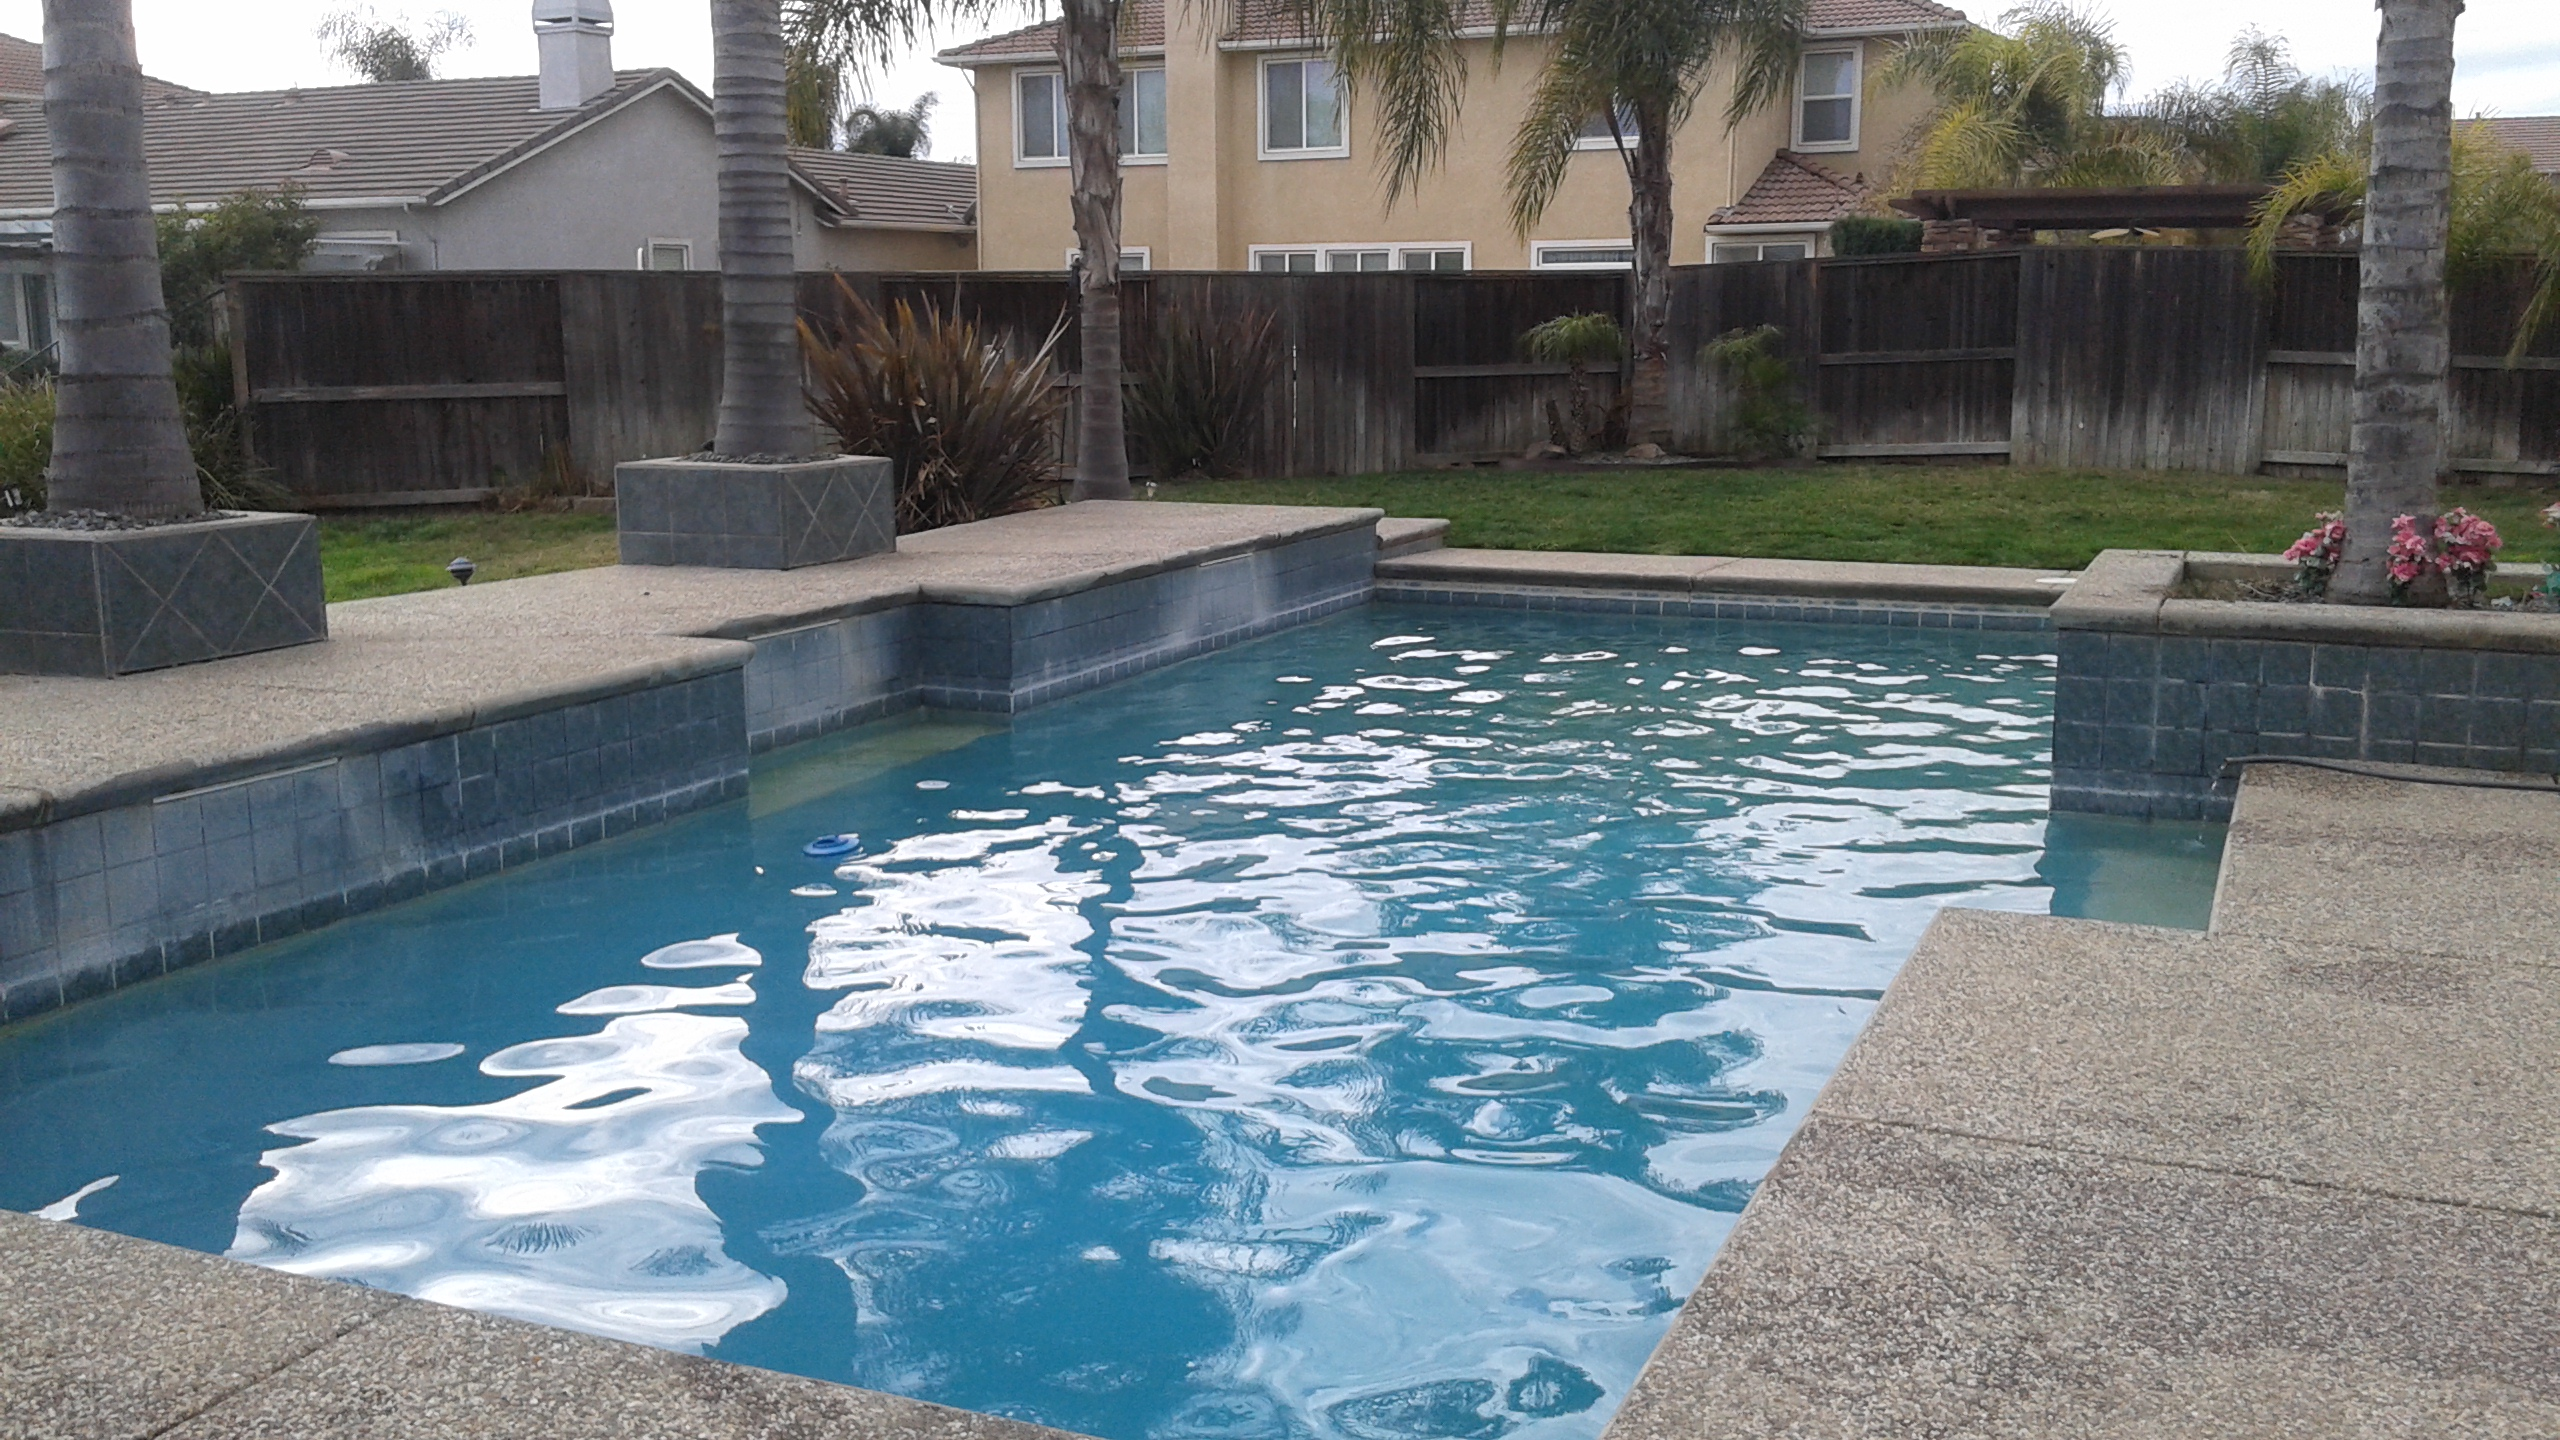 Swimming pool Services pool cleaning services and Yard services yard ...